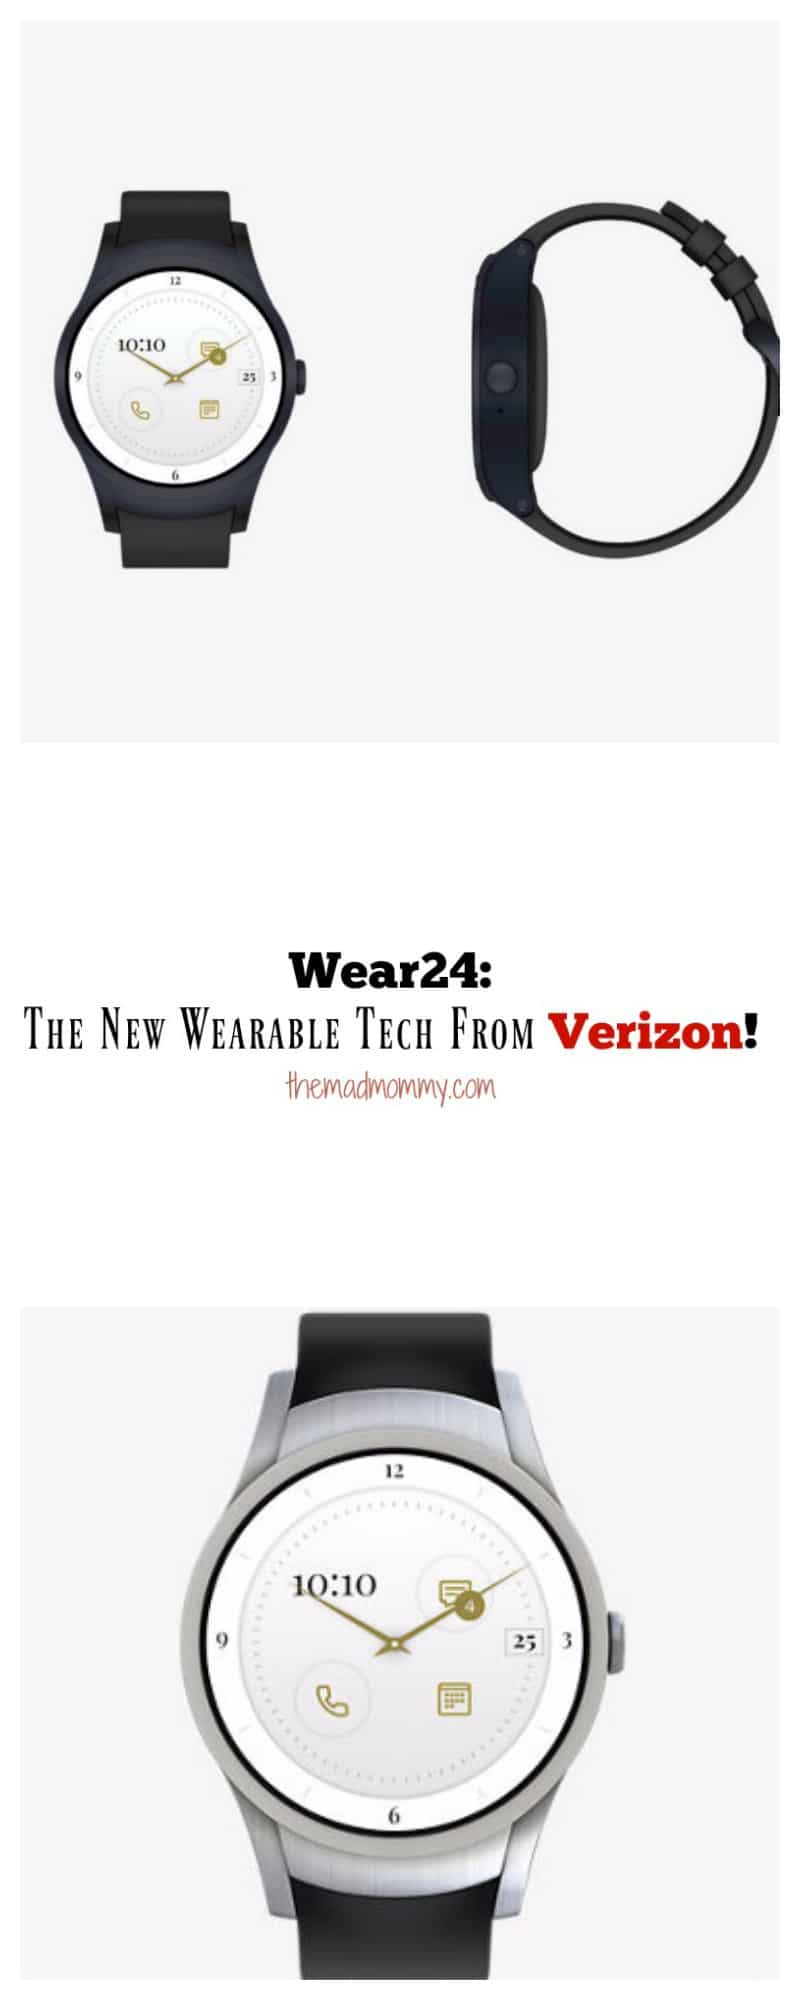 The Wear24 Smartwatch is a Verizon Exclusive product and runs with Android 2.0 products. It comes pre-loaded with a few helpful apps including Find My Phone, Agenda, Fit and HomeGoogle/Together.